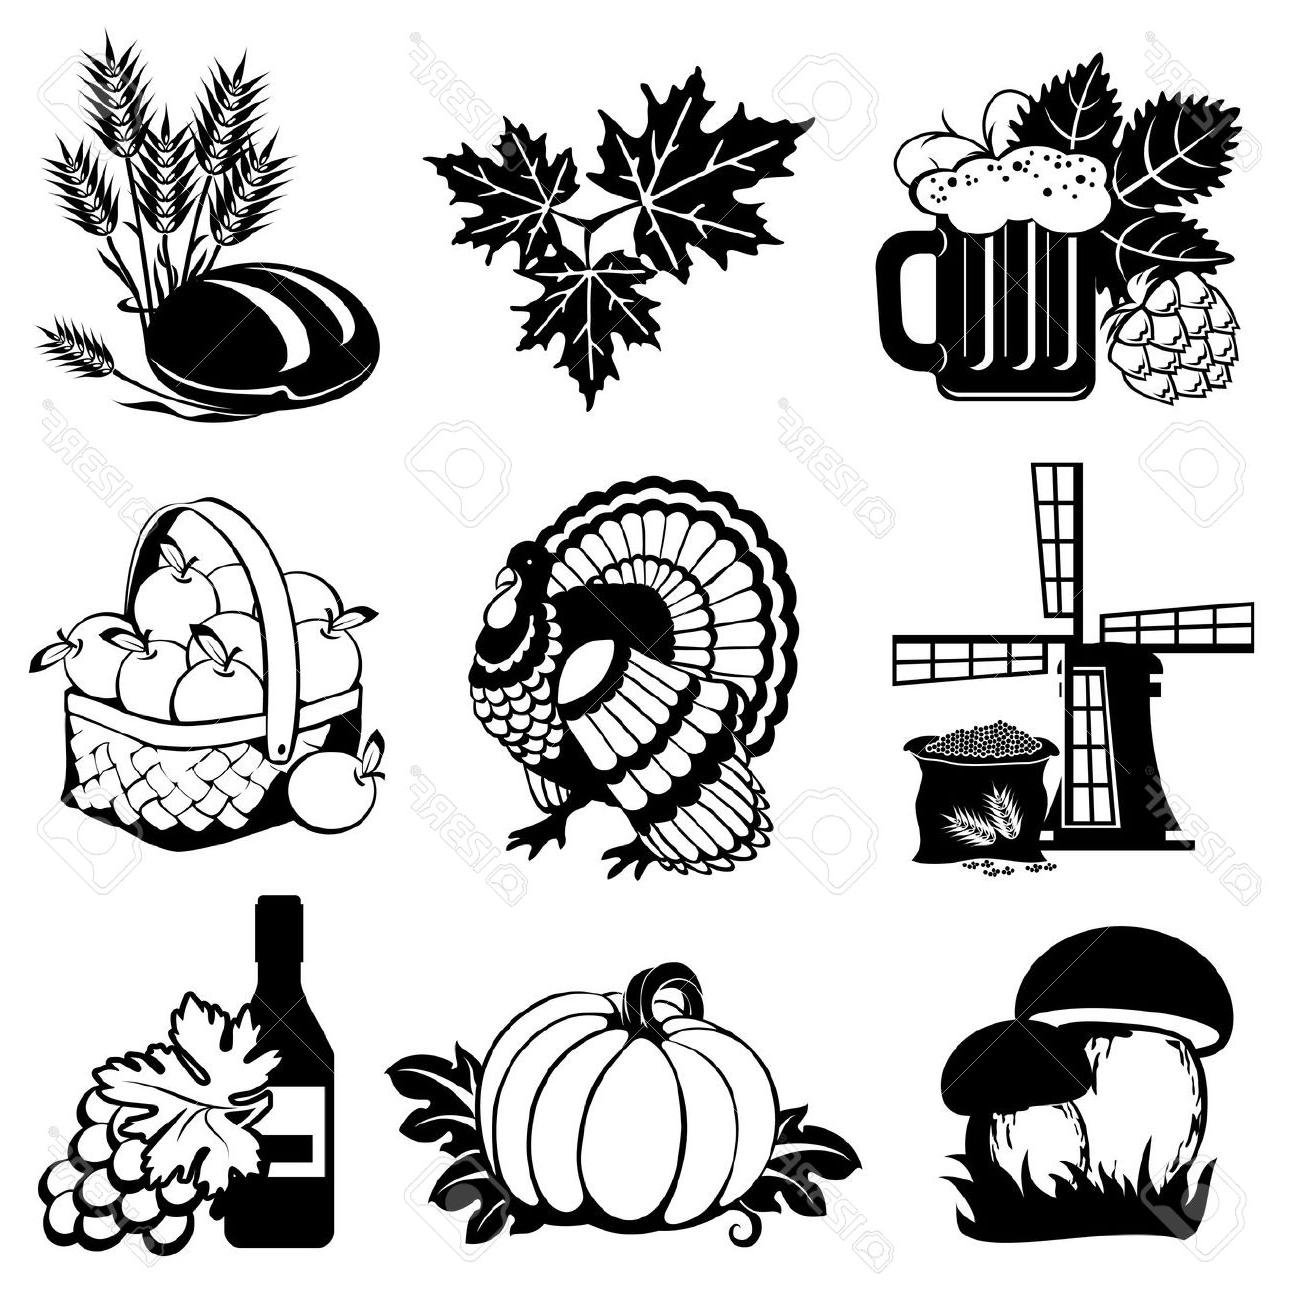 Best Free Harvest Silhouette Fall Clipart Image.